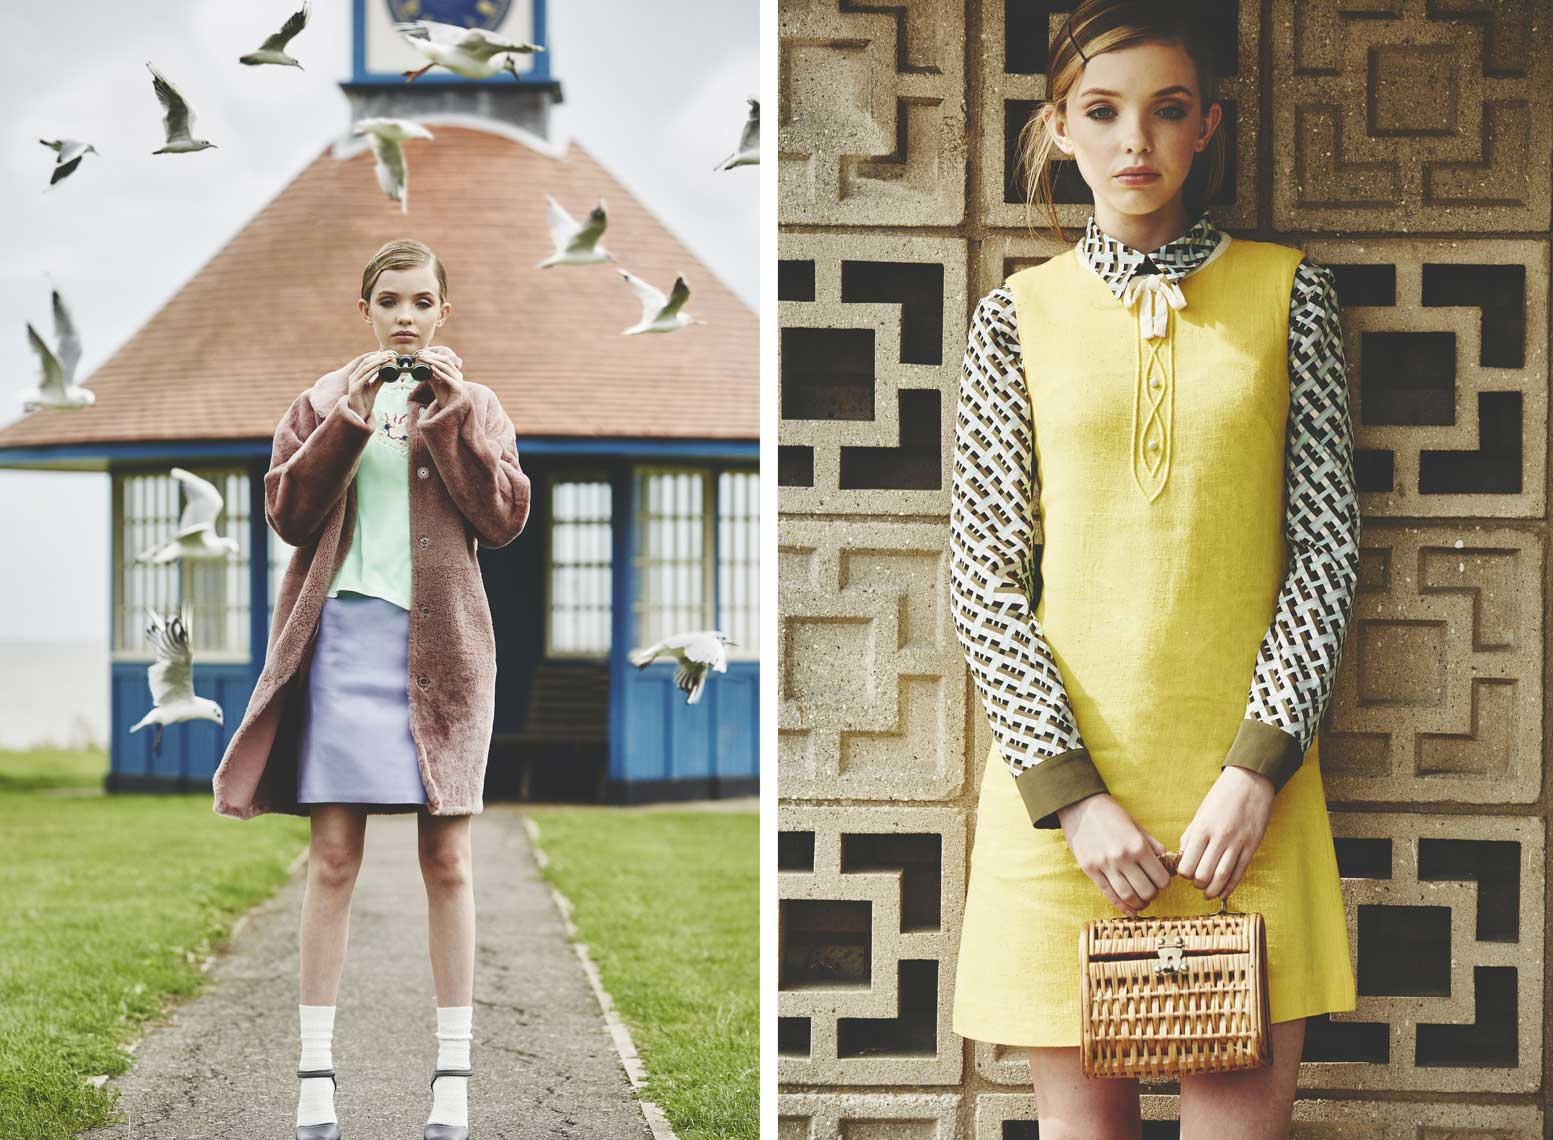 issie-gibbons-fashion-stylist-schon-magazine-escada-holly-fulton-marni-wes-anderson-seagulls